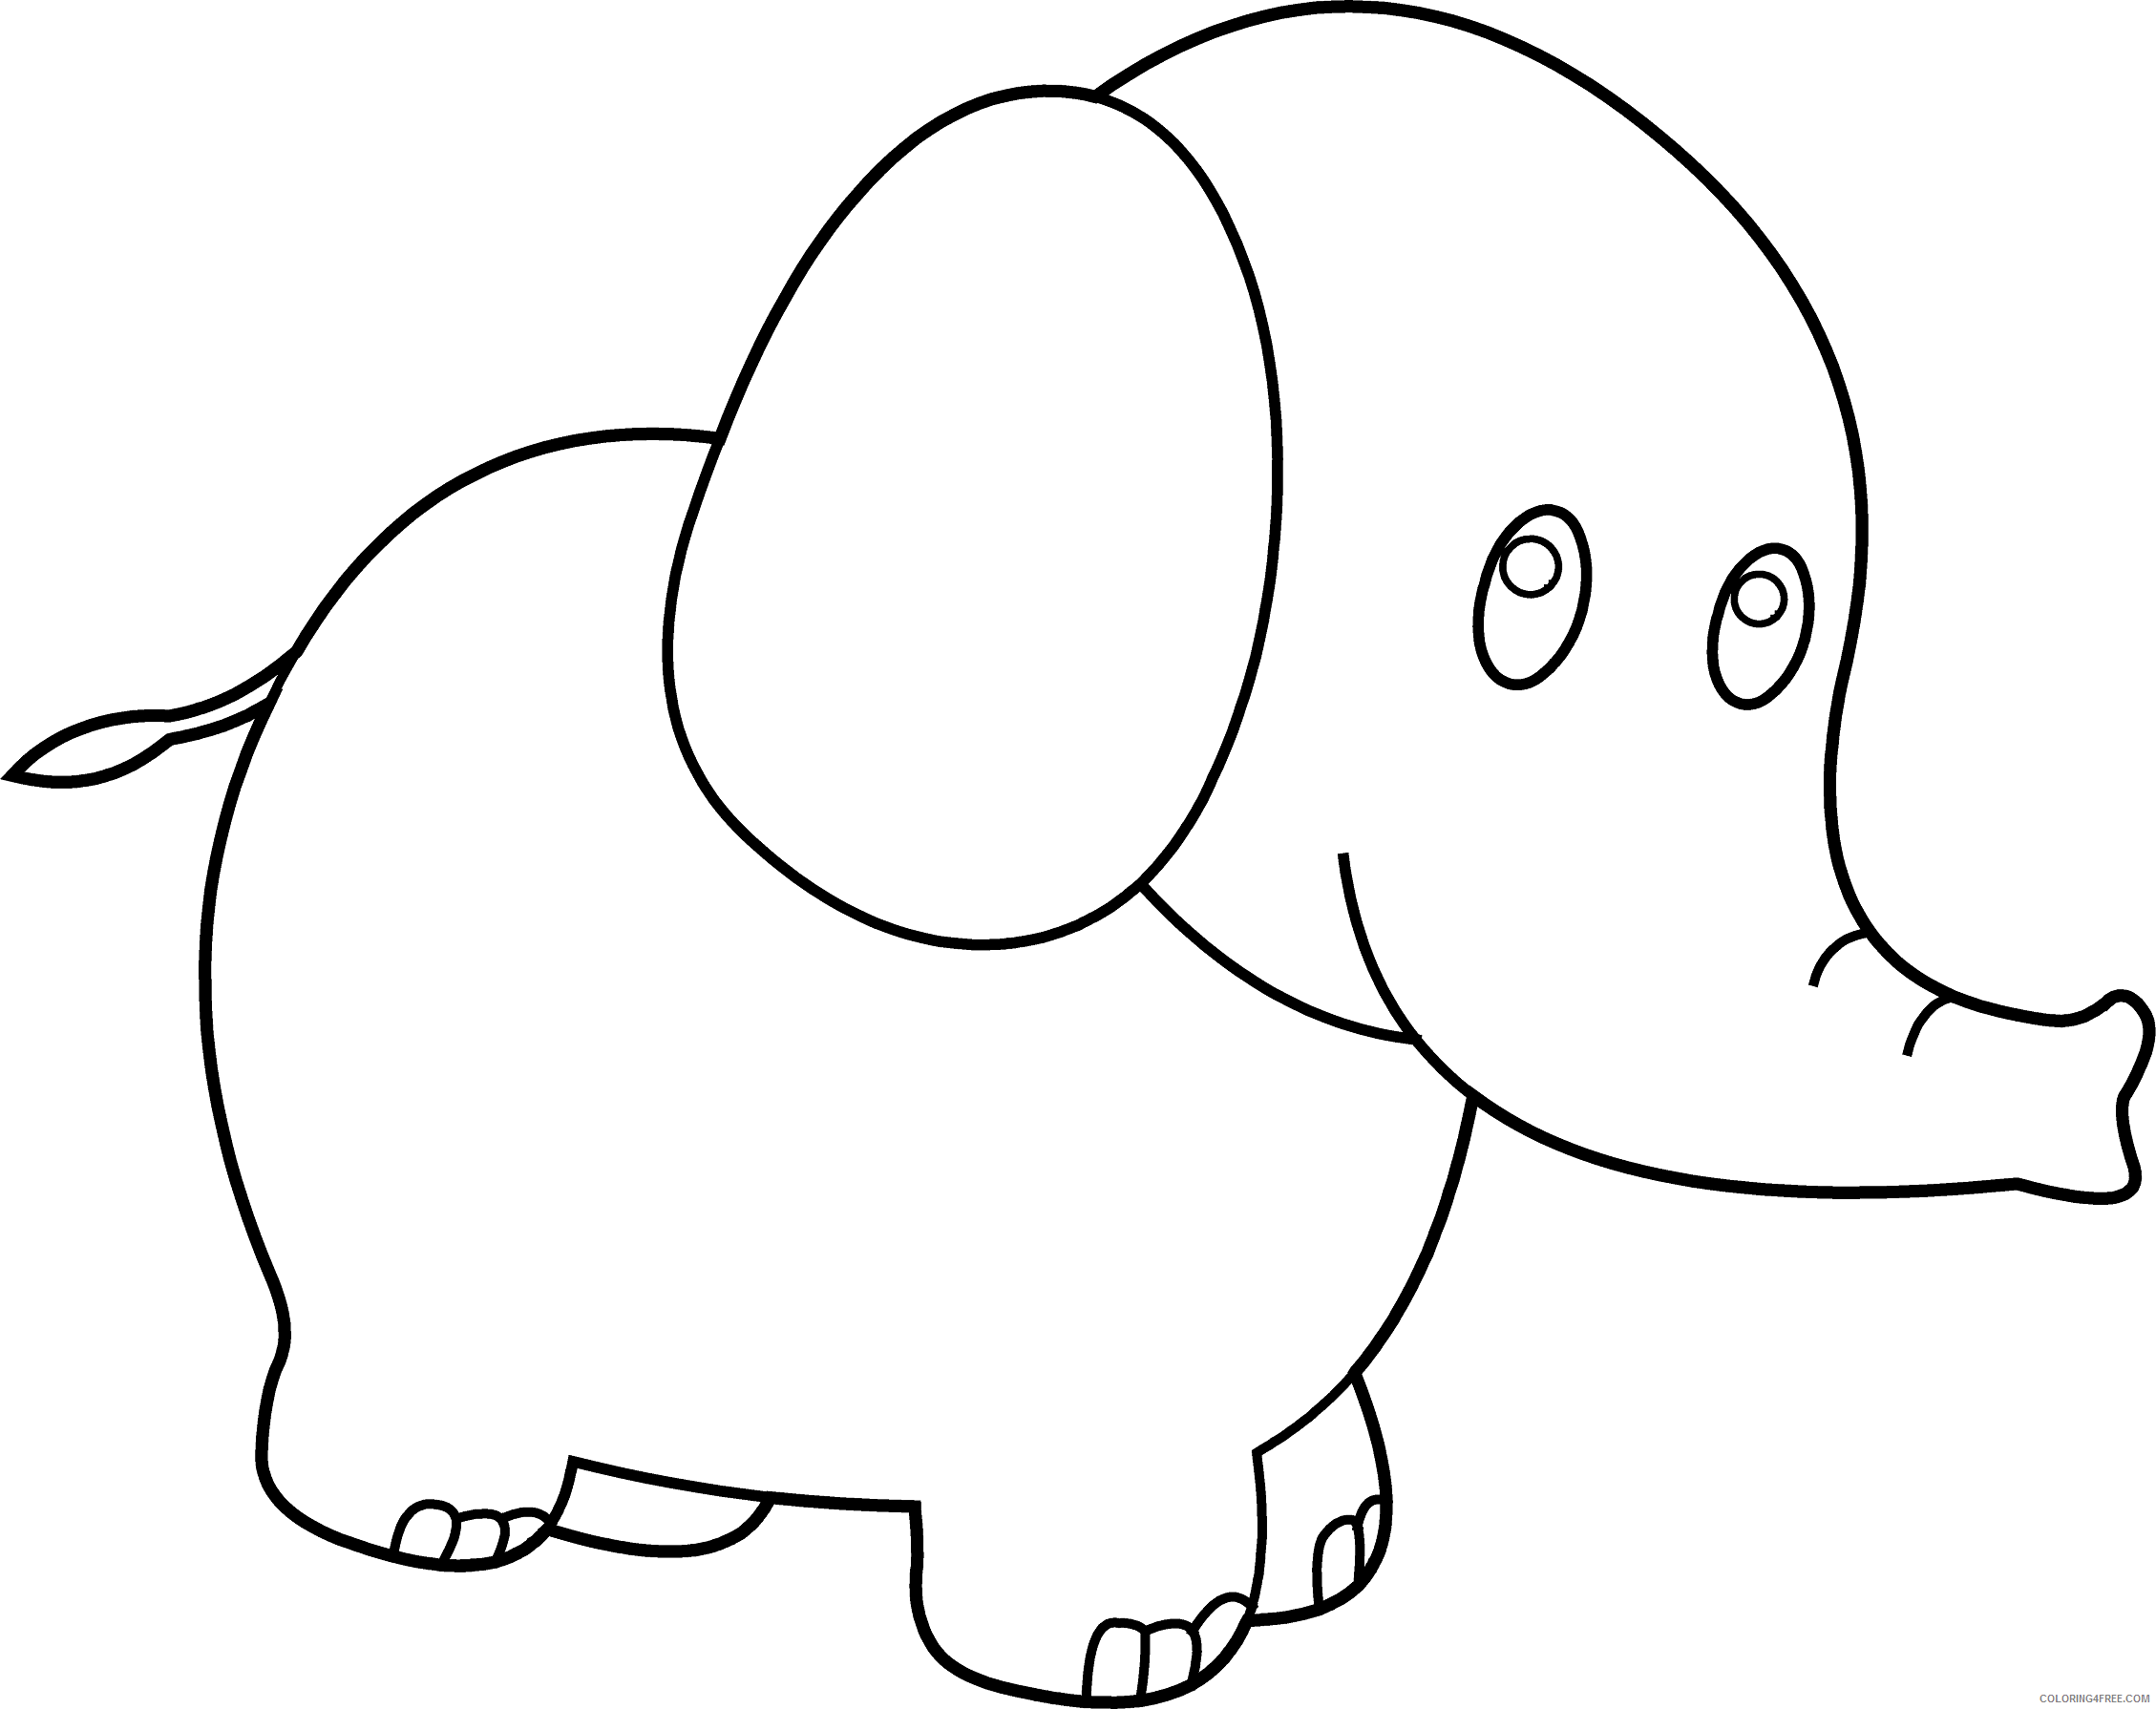 Elephant Outline Coloring Pages elephant 29 png Printable Coloring4free